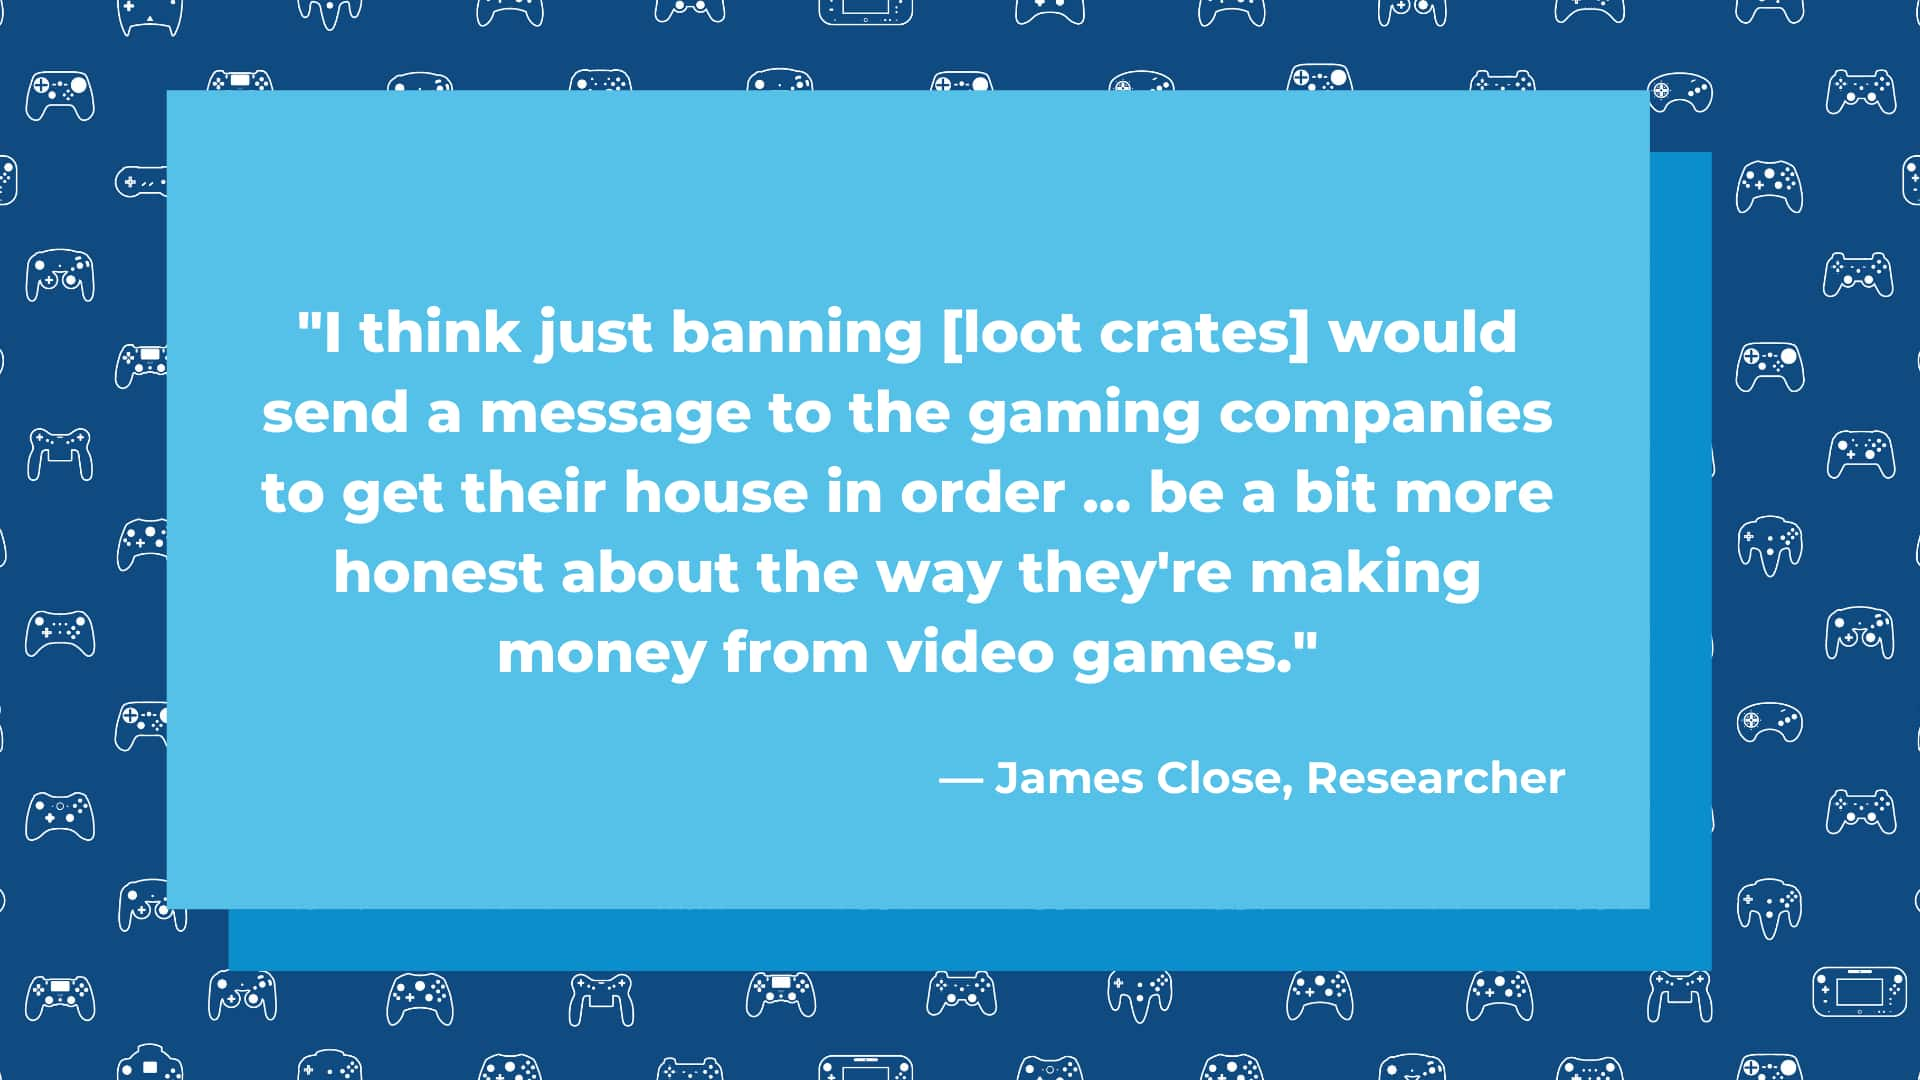 I think just banning loot crates would send a message to the gaming companies to get their house in order ... be a bit more honest about the way they're making money from video games.  James Close, researcher